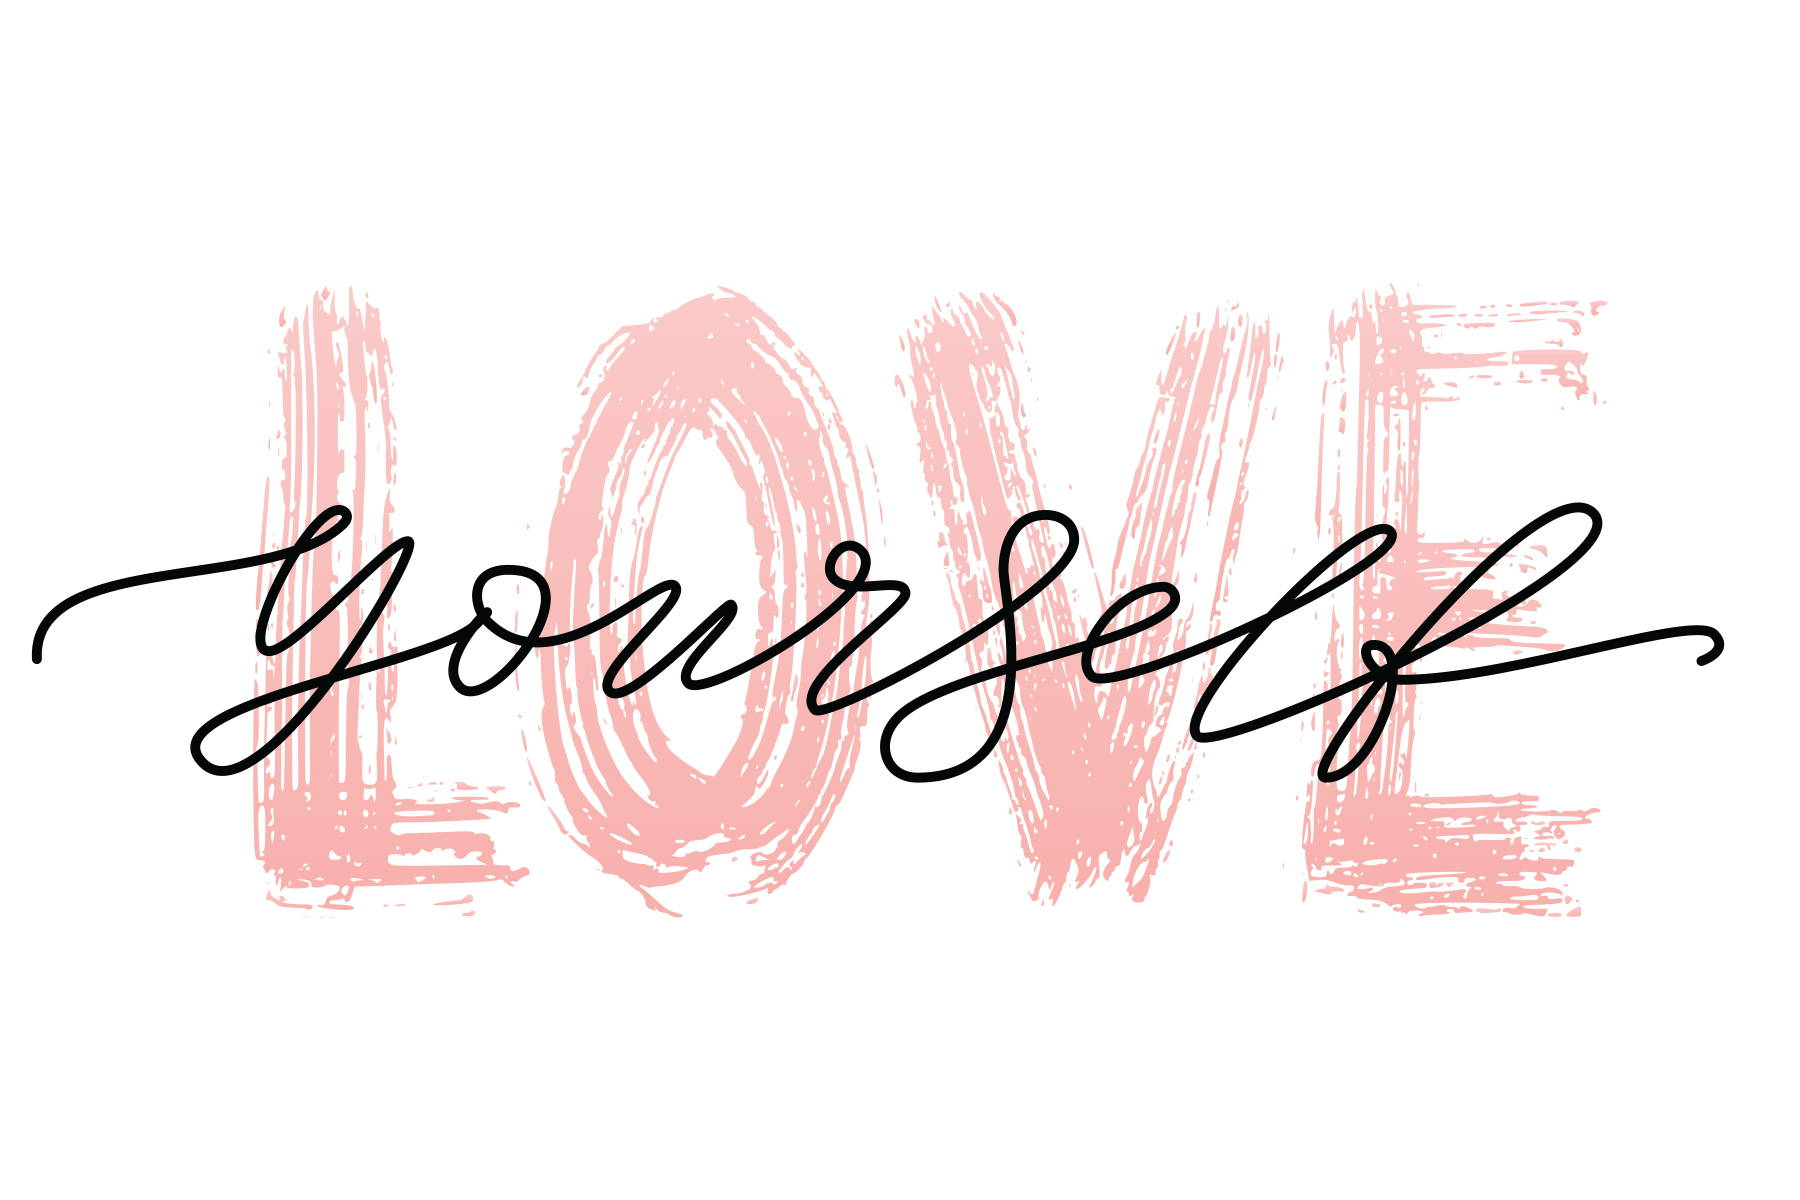 love yourself self care wellness wellbeing confidence reiki reiki infused skin skincare organic vegan cruelty free sustainable natural self image self love happiness positive plants nature